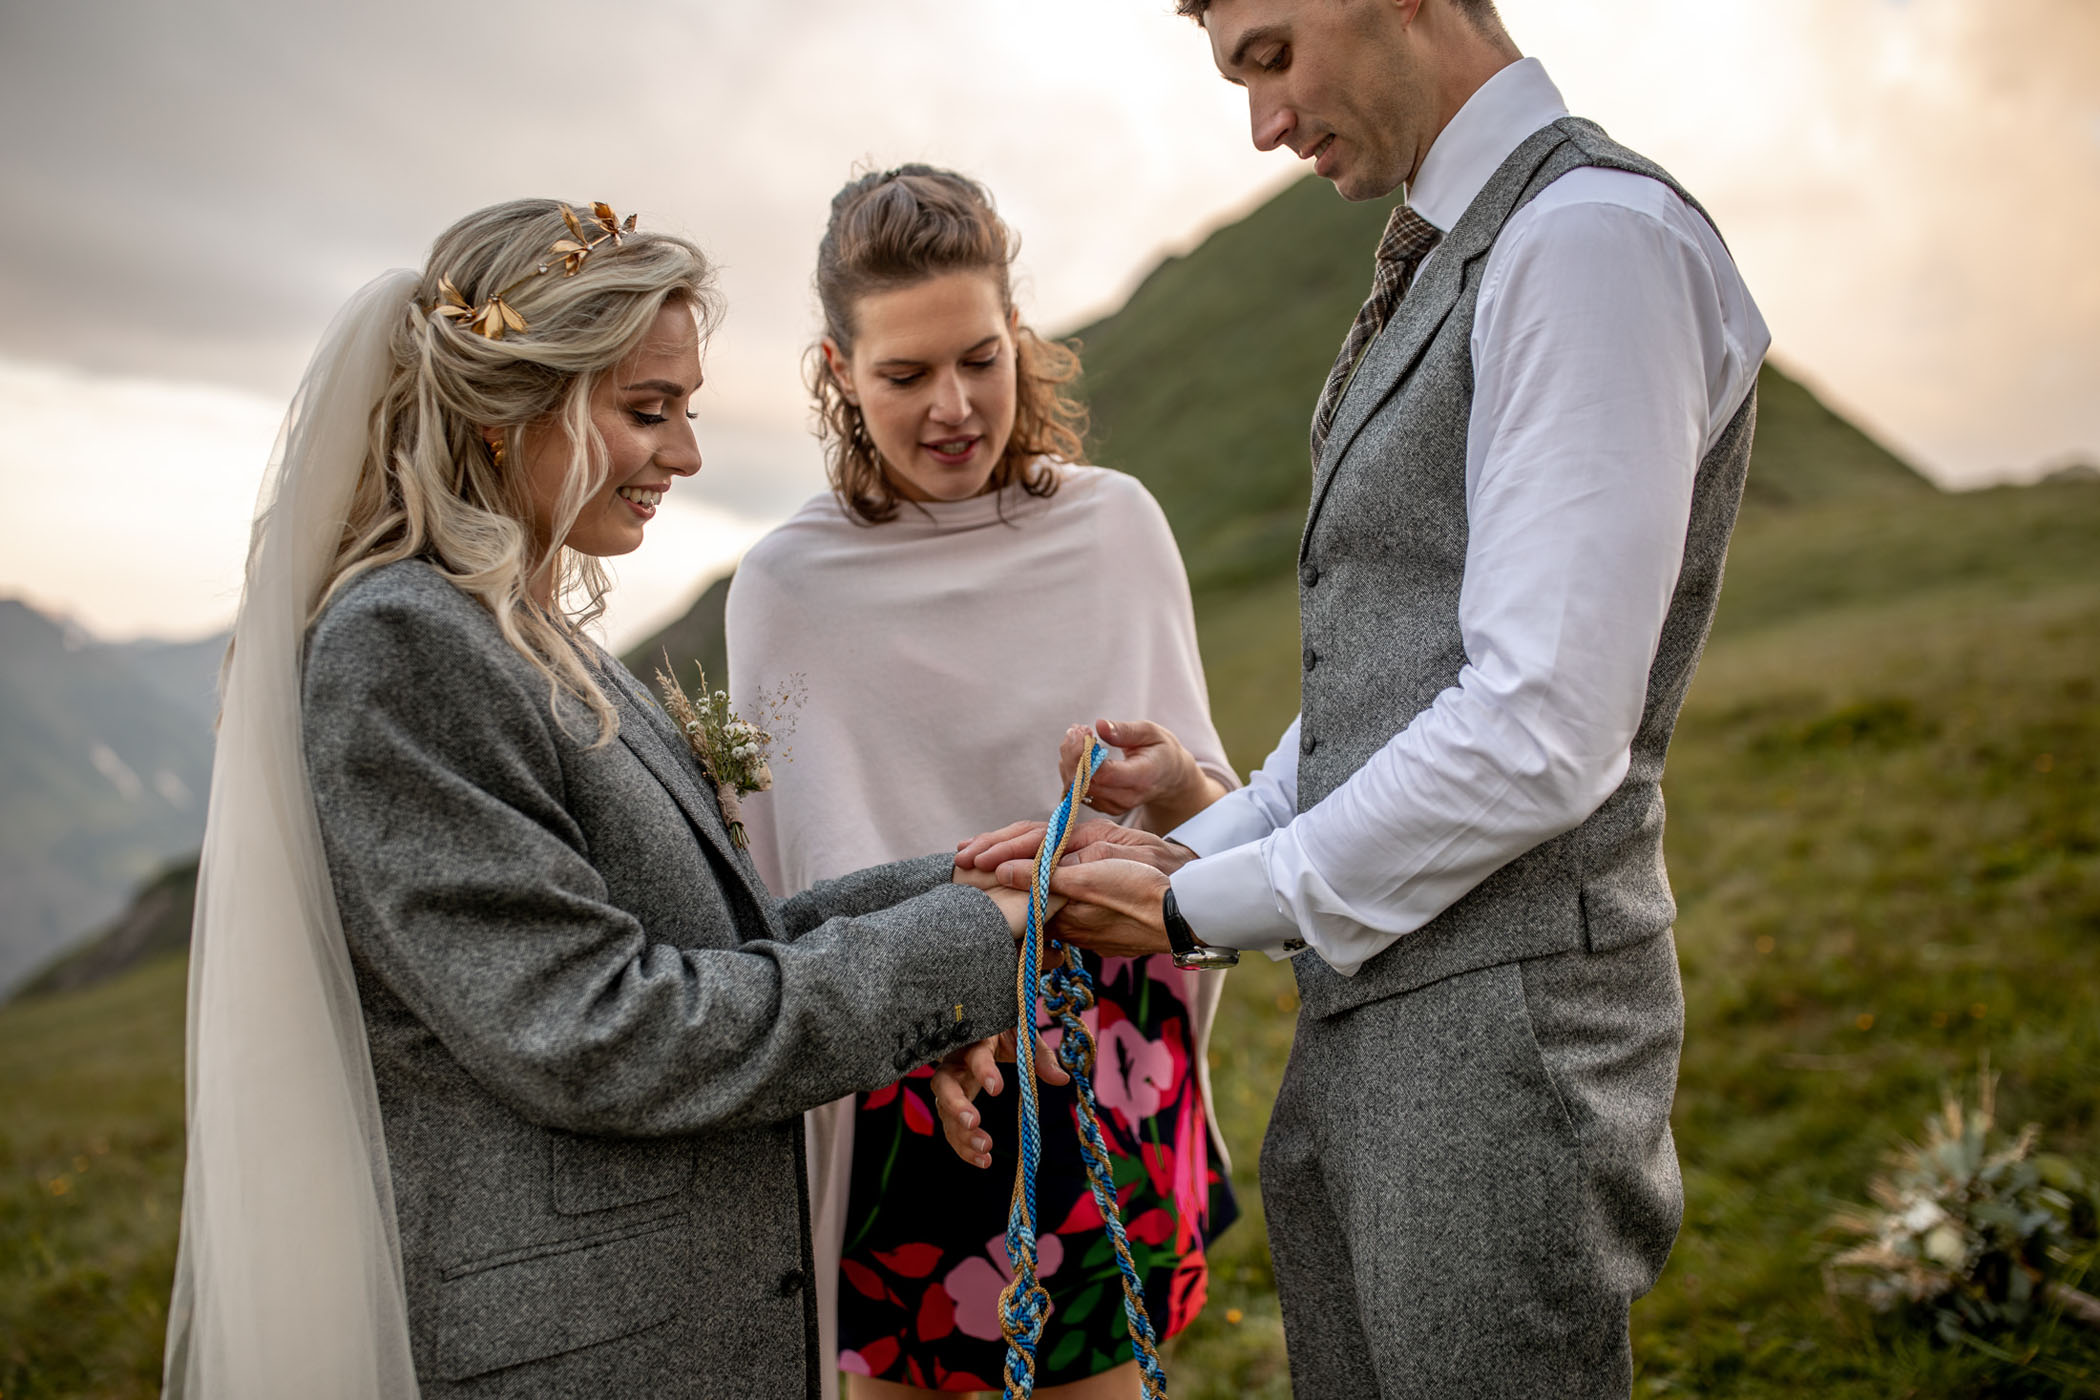 Wedding ceremony tradition in the mountains